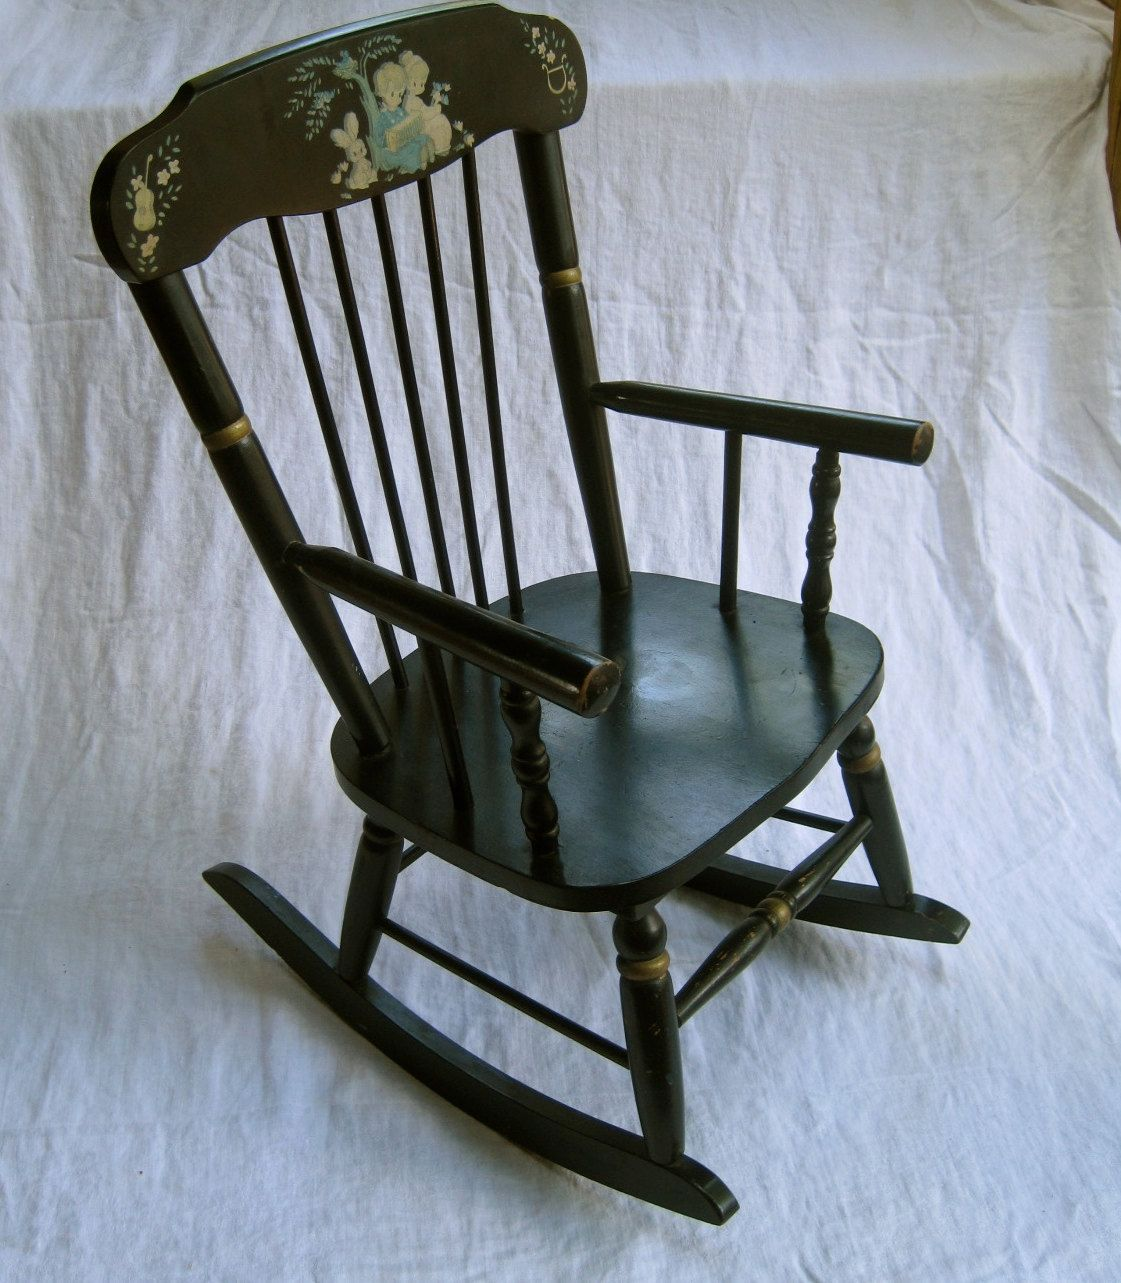 pictures vintage children's rocking chair | Children's musical rocking chair  - vintage, made by Ramsdell - Pictures Vintage Children's Rocking Chair Children's Musical